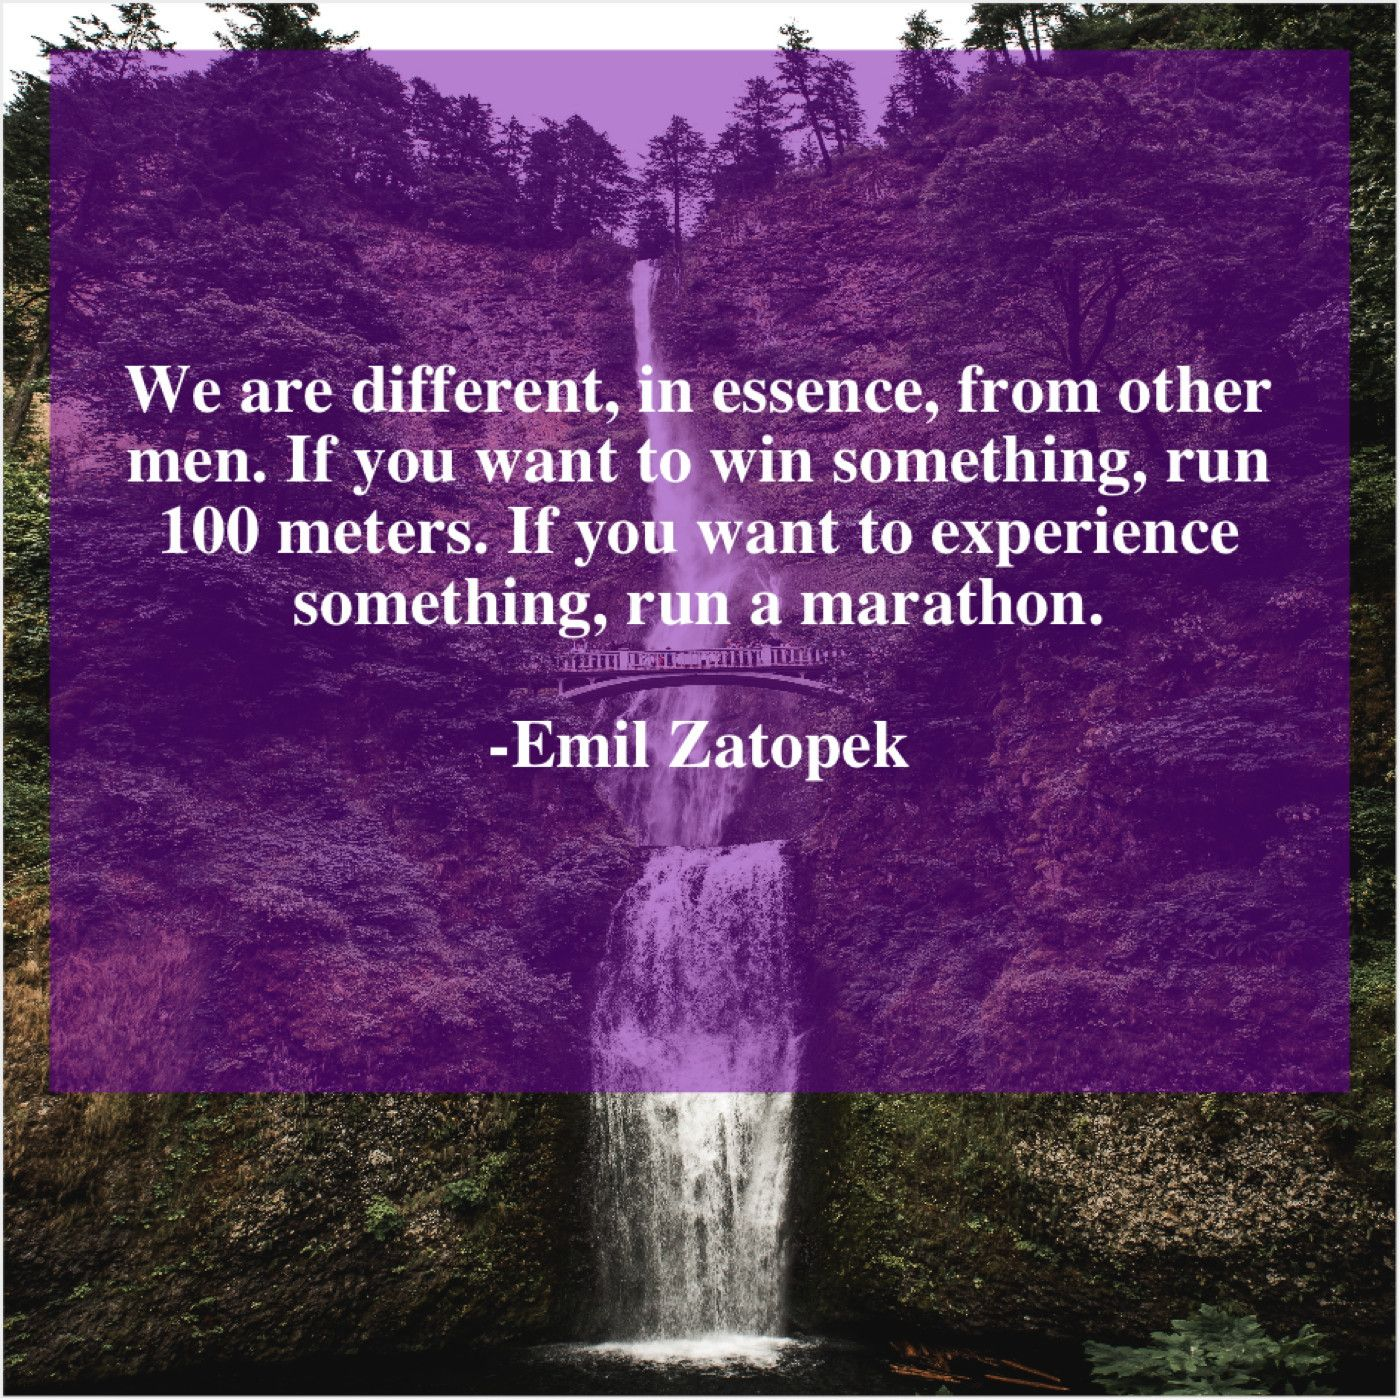 Emil Zatopek We Are Different In Essence Paul Tillich Idina Menzel People Of The World